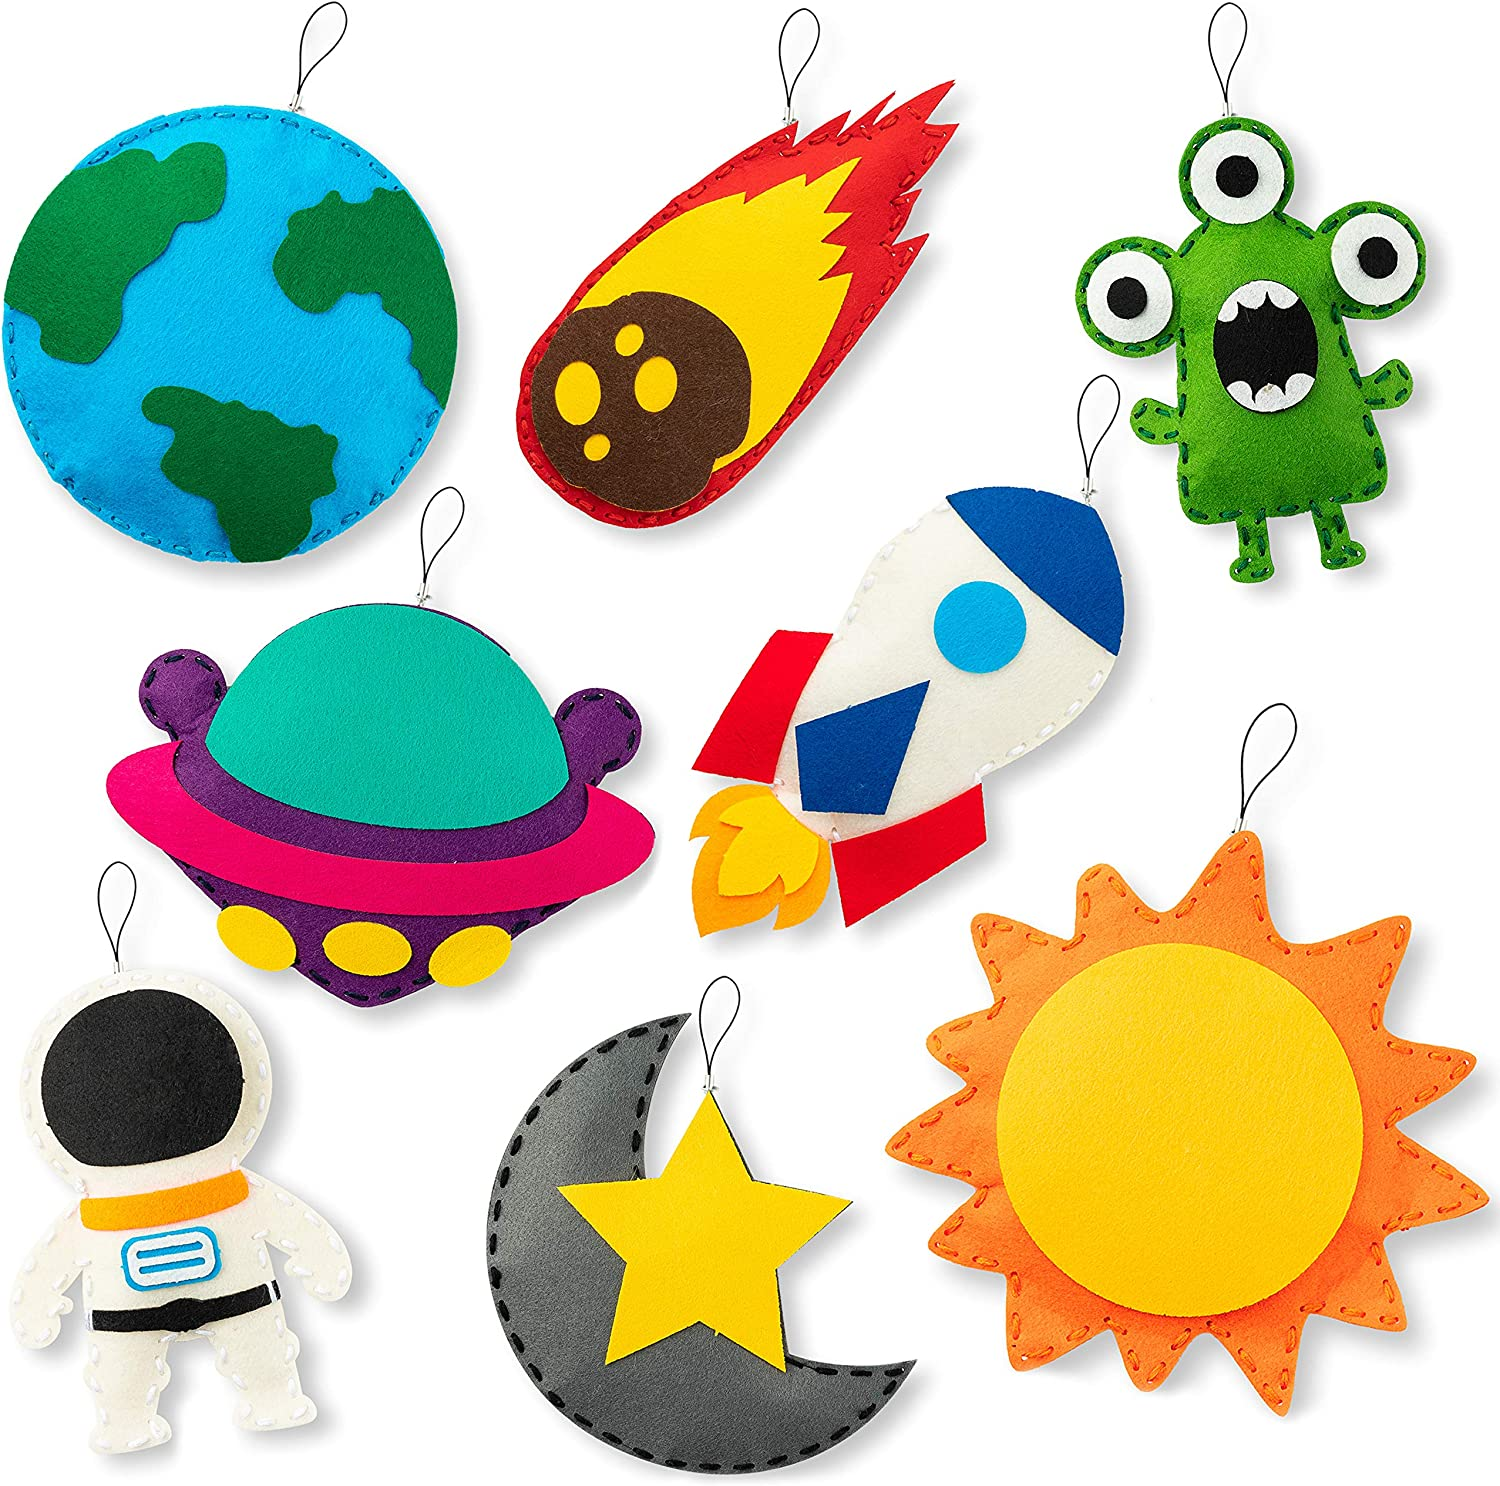 WATINC 8Pcs Outer/ Space Sewing Kit DIY Art Craft Ornaments Sew Kits Astronaut Alien Rocket the Earth the Sun Moon Star Spaceship Meteorolite Creative Indoor Activity Party Supplies Gift for Girls Boys